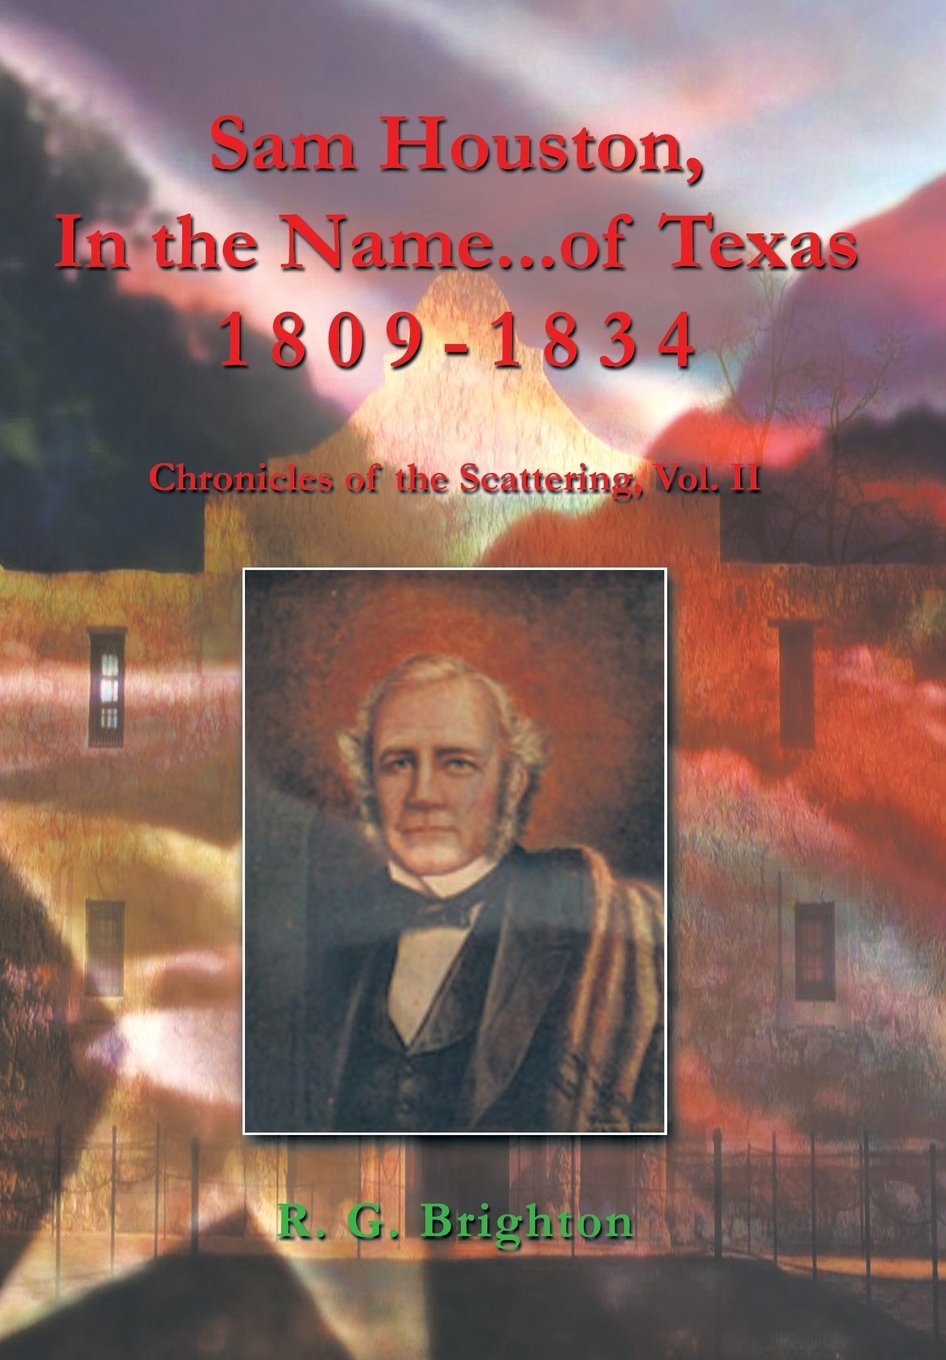 Download Sam Houston in the Name of Texas 1809-1834: Chronicles of the Scattering, Vol. II pdf